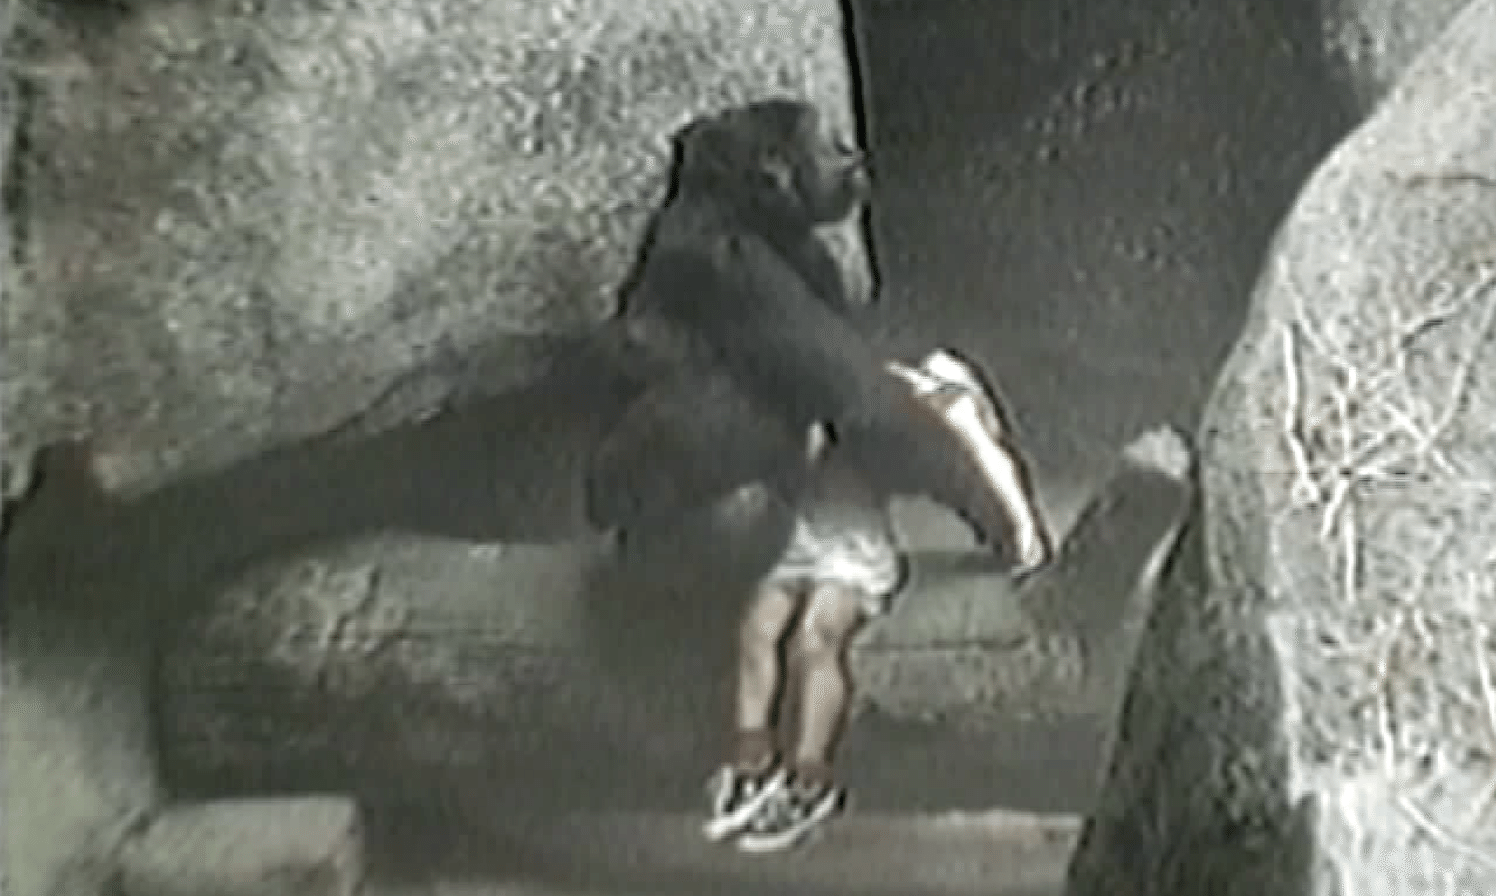 Video Gorilla Rescuing 3-Year-Old Boy at Brookfield Zoo in 1996